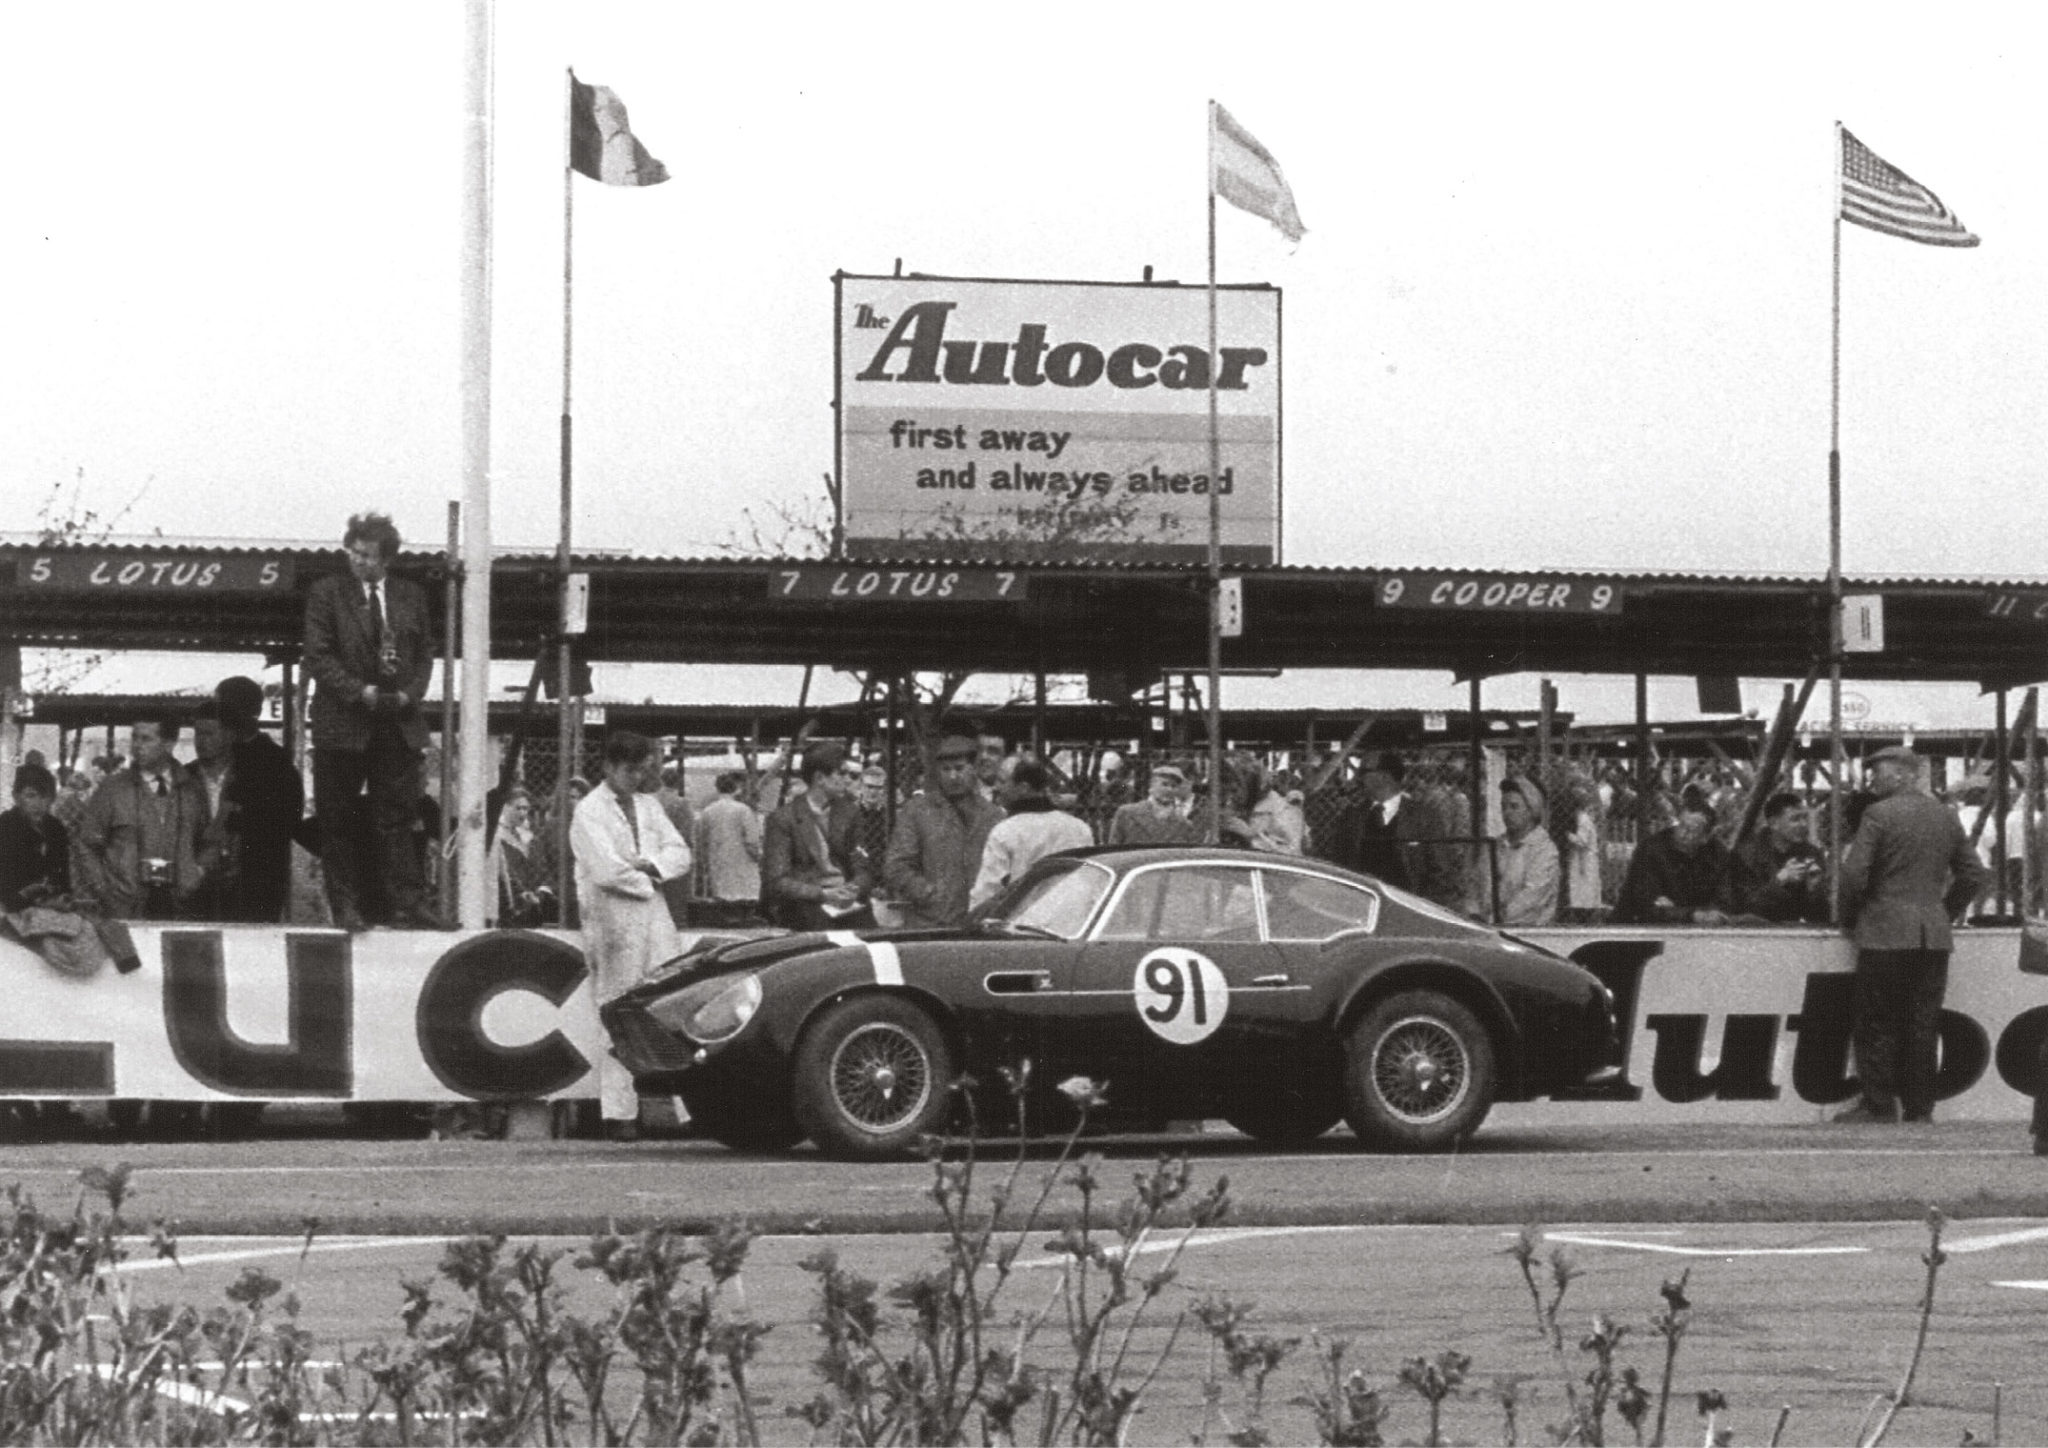 Stirling Moss's Aston Martin DB4 GT Zagato in the pits, Easter 1961. He finished third in the Fordwater Trophy, behind Mike Parkes and Innes Ireland